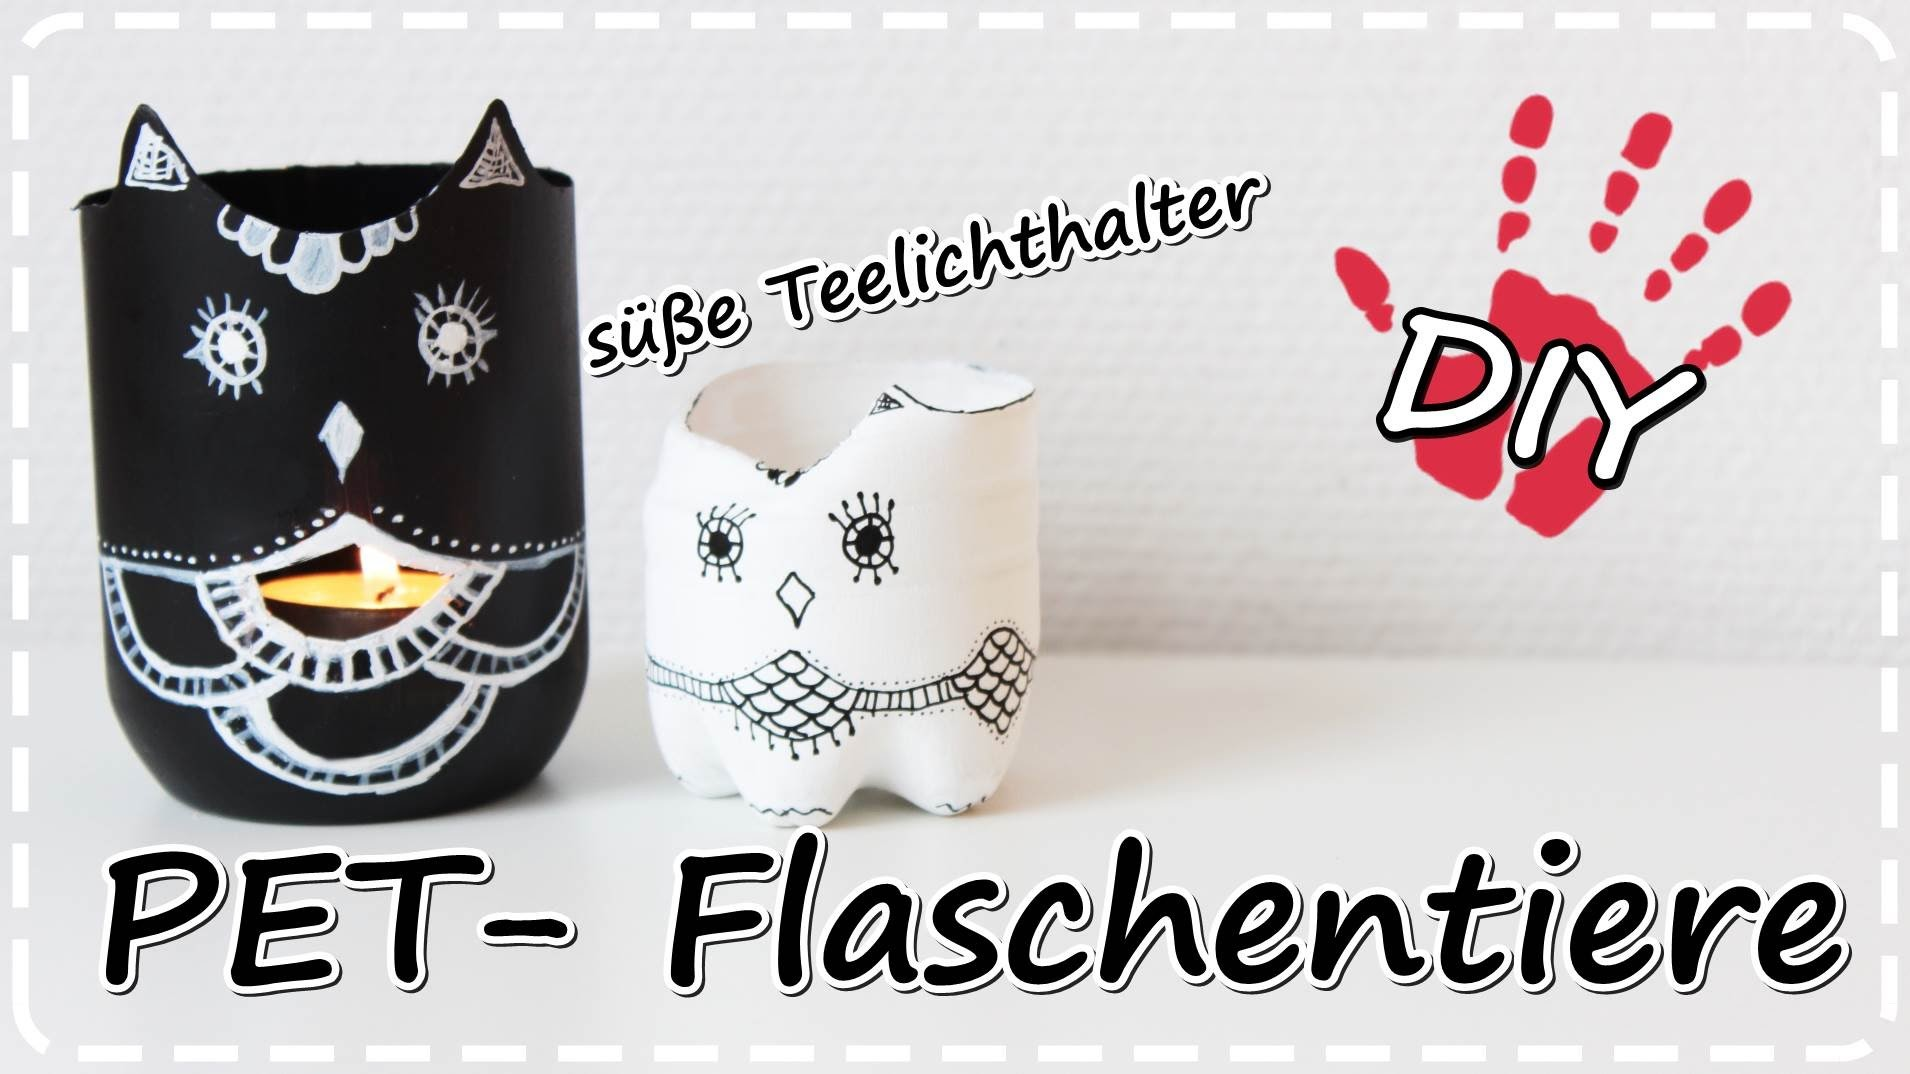 diy tiere aus pet flaschen teelichthalter vasen schmuckaufbewahrung plastic bottle vases. Black Bedroom Furniture Sets. Home Design Ideas